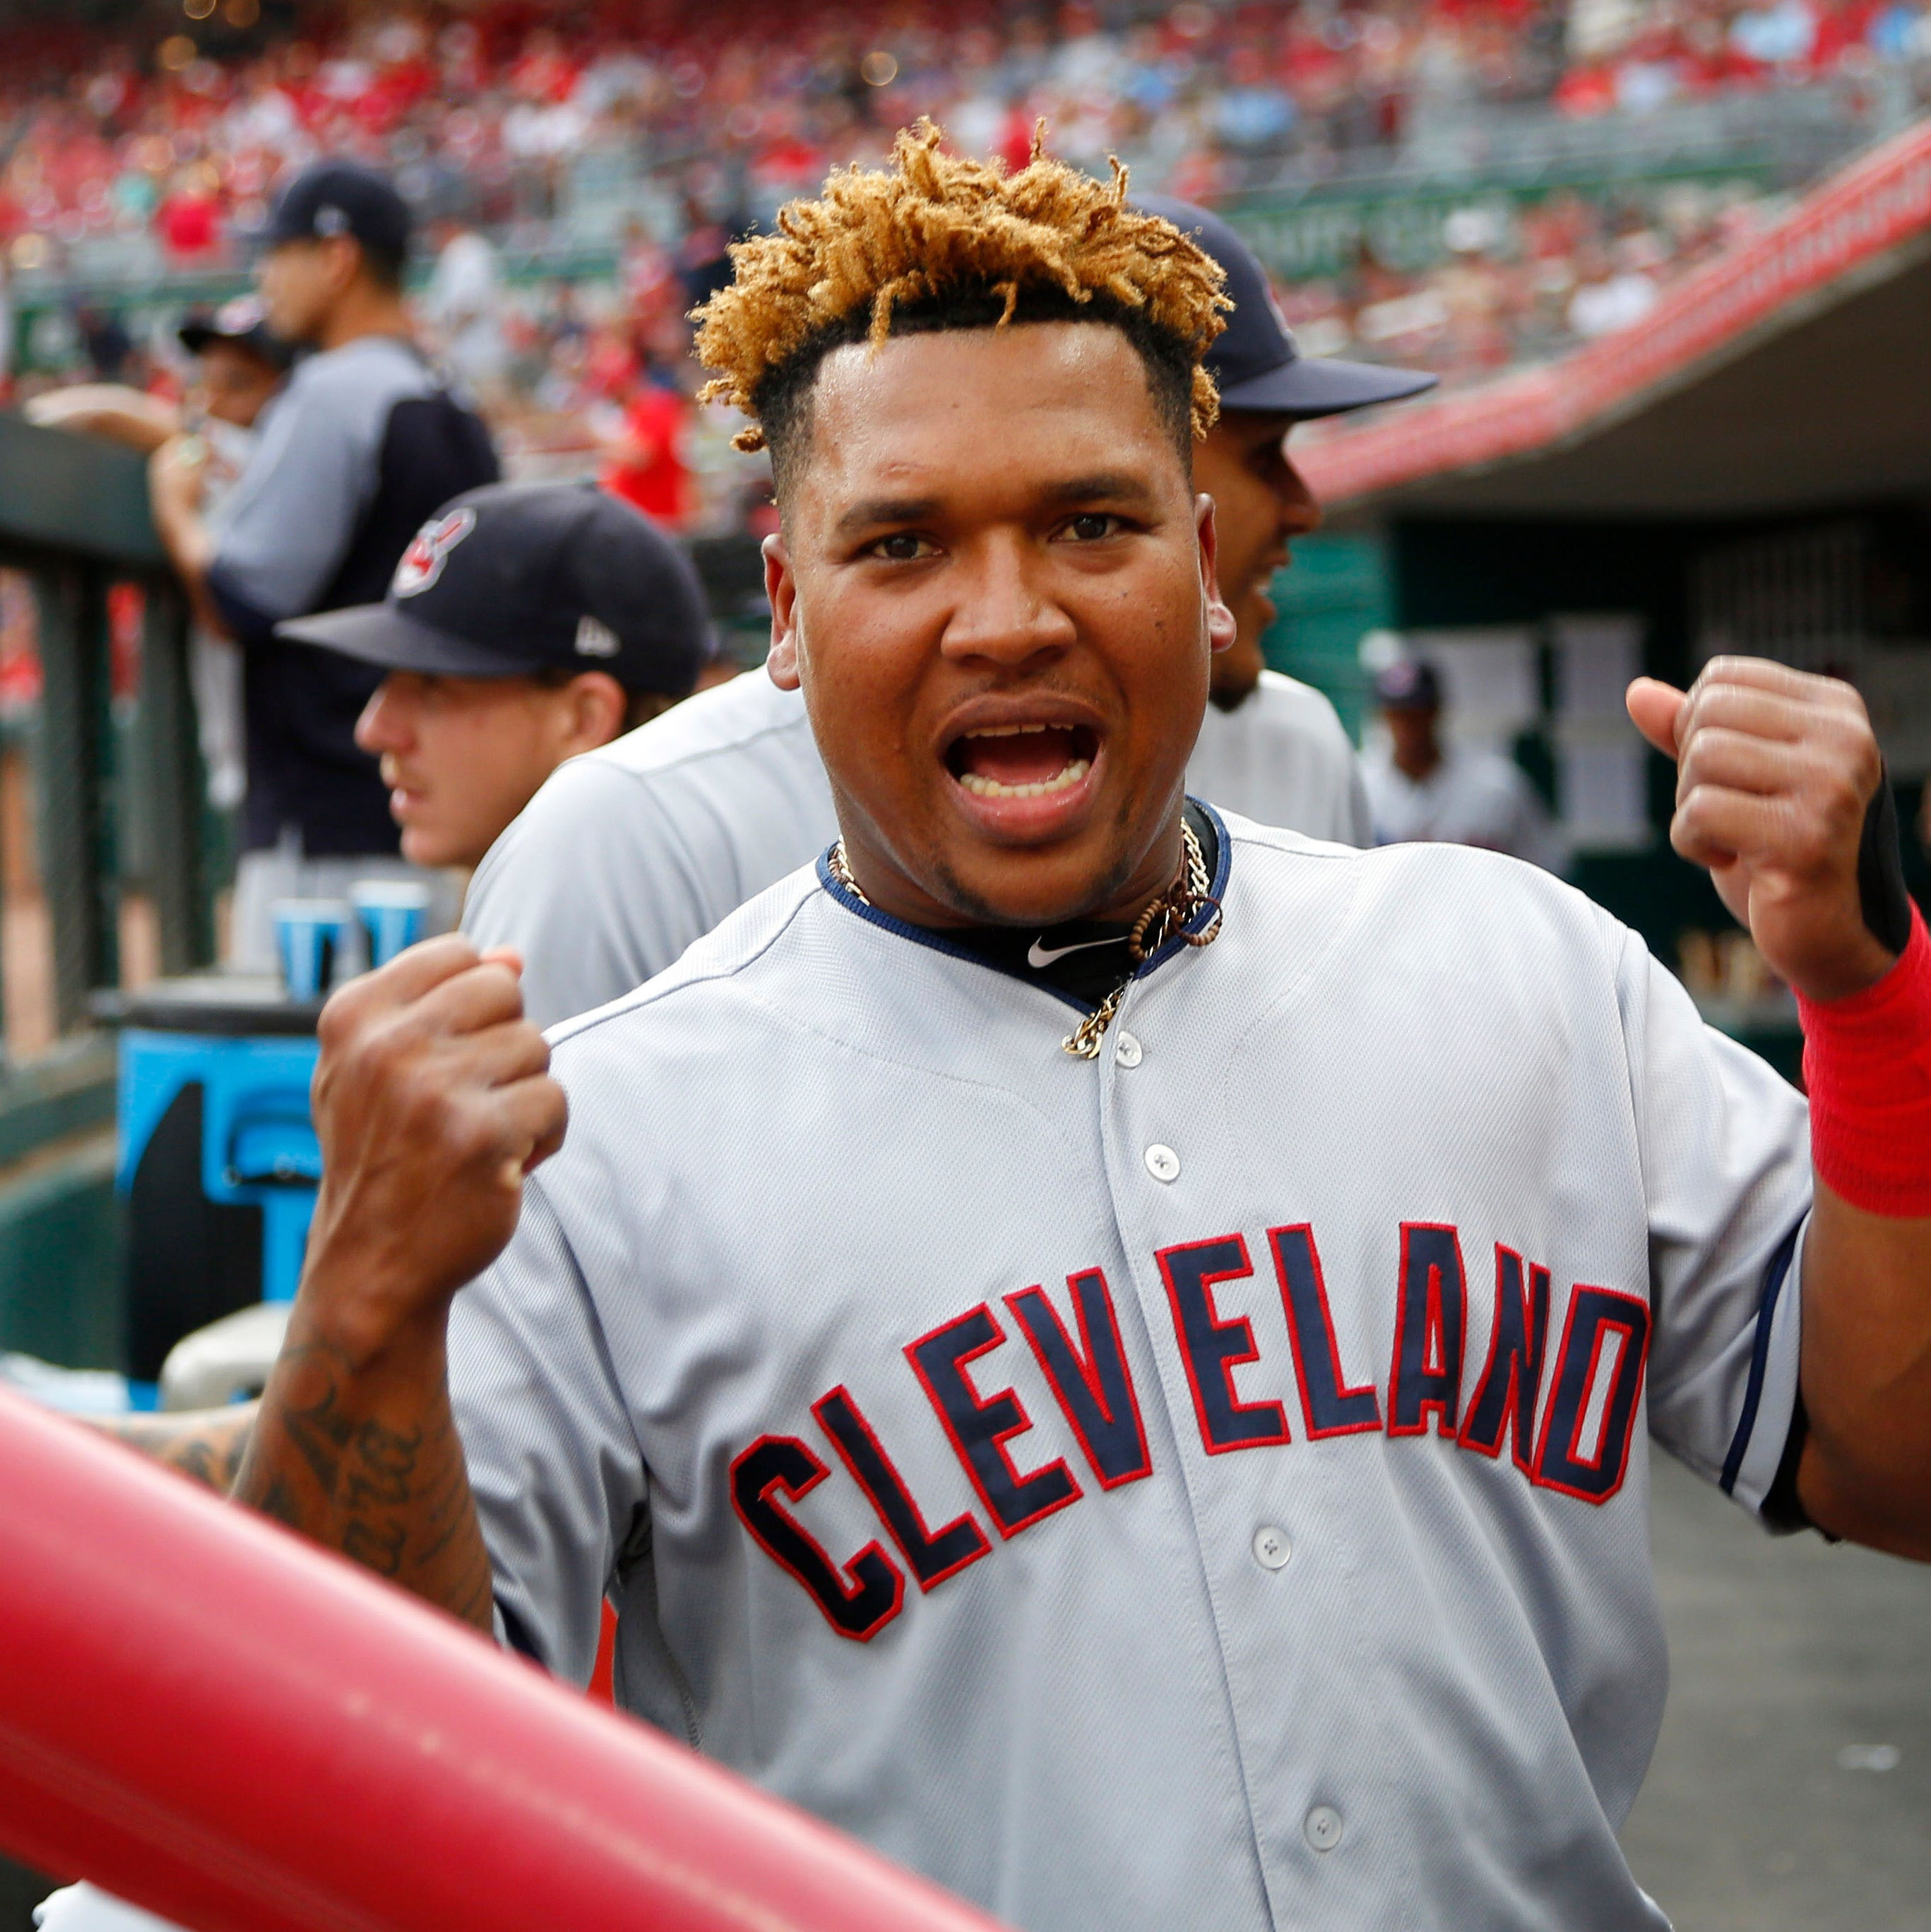 Cincinnati Reds fan wins battle with Indians' Jose Ramirez for foul ball